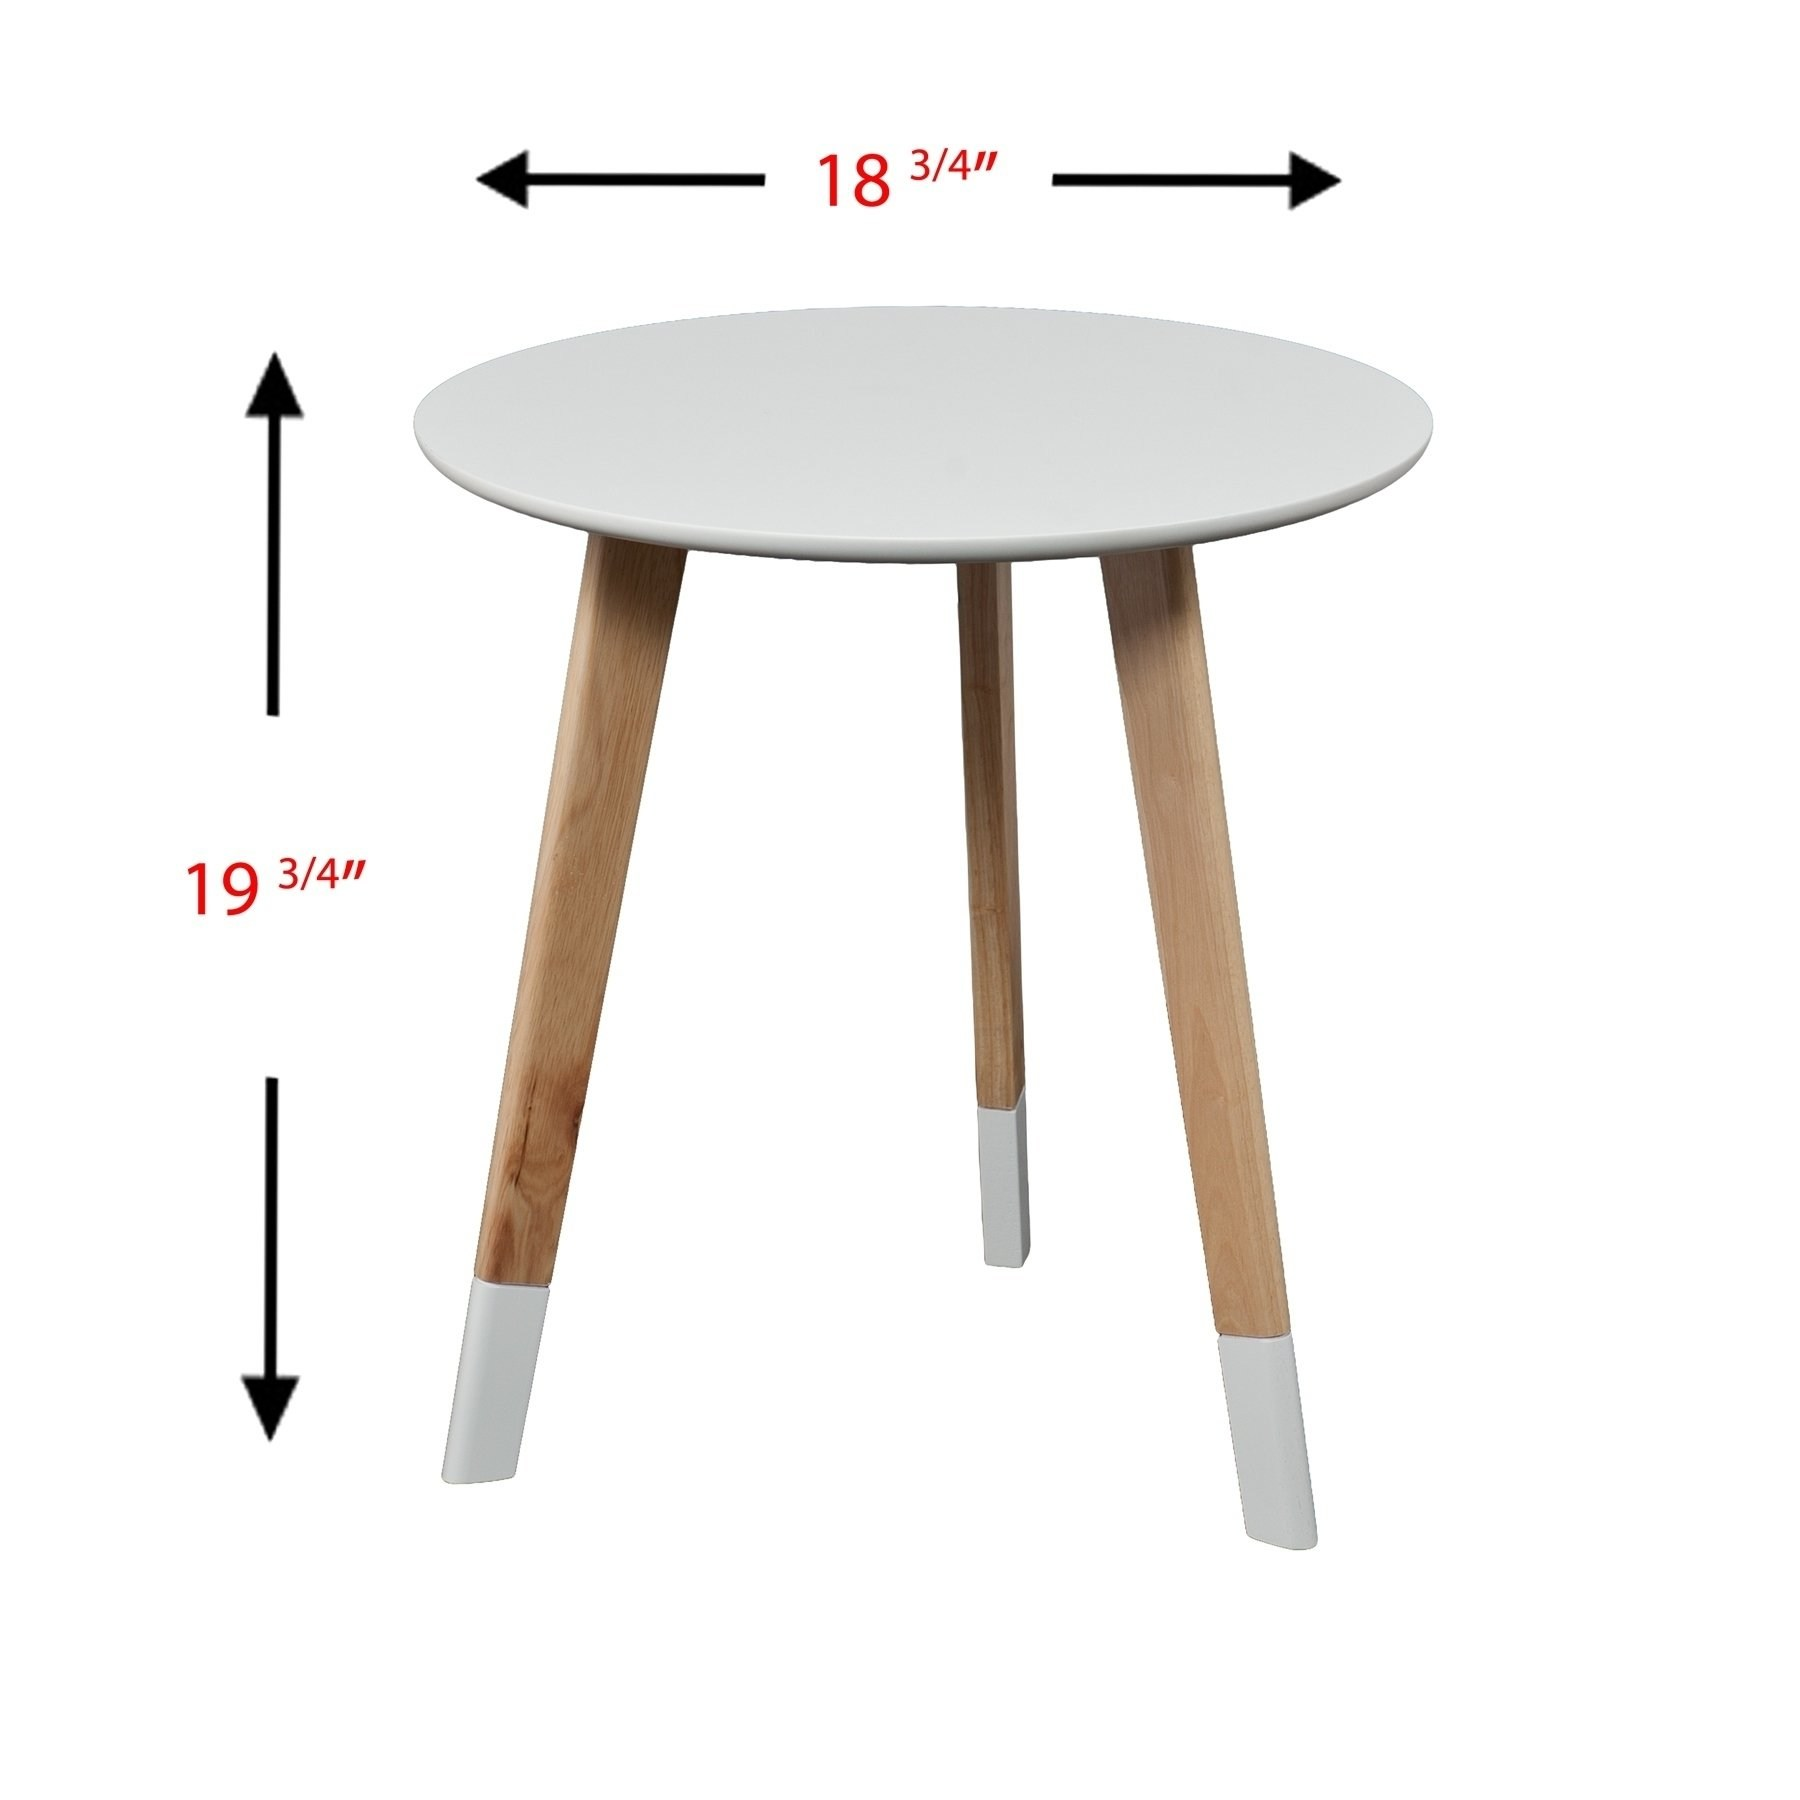 carson carrington austnes round accent table free harper blvd baylis shipping today wood drop leaf iron company placemats and napkins set wine rack cabinet insert slim end tables